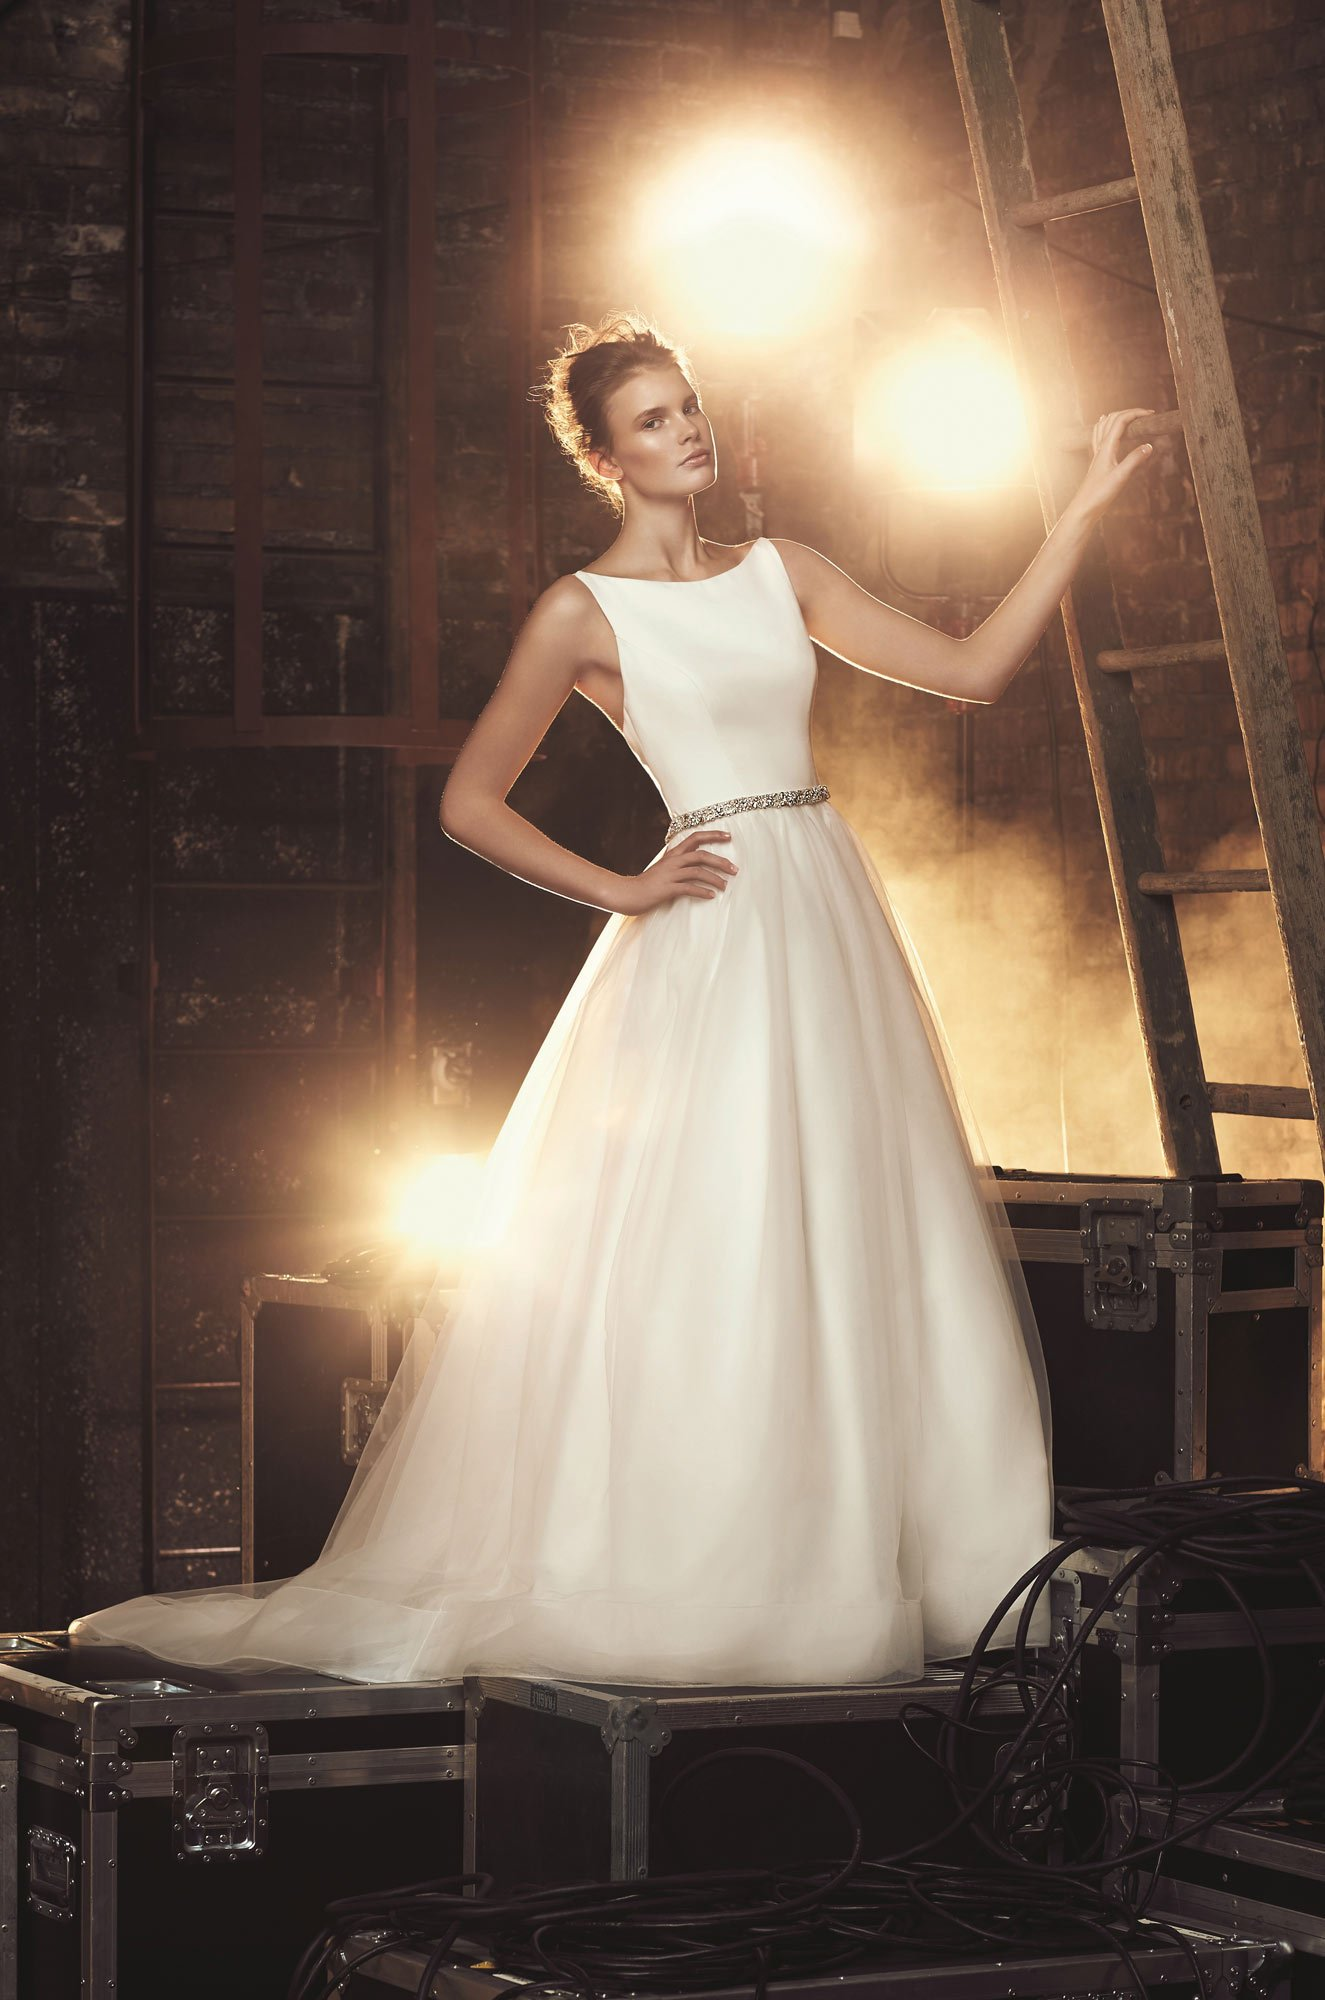 Tulle Skirt Wedding Dress - Style #2079 | Mikaella Bridal